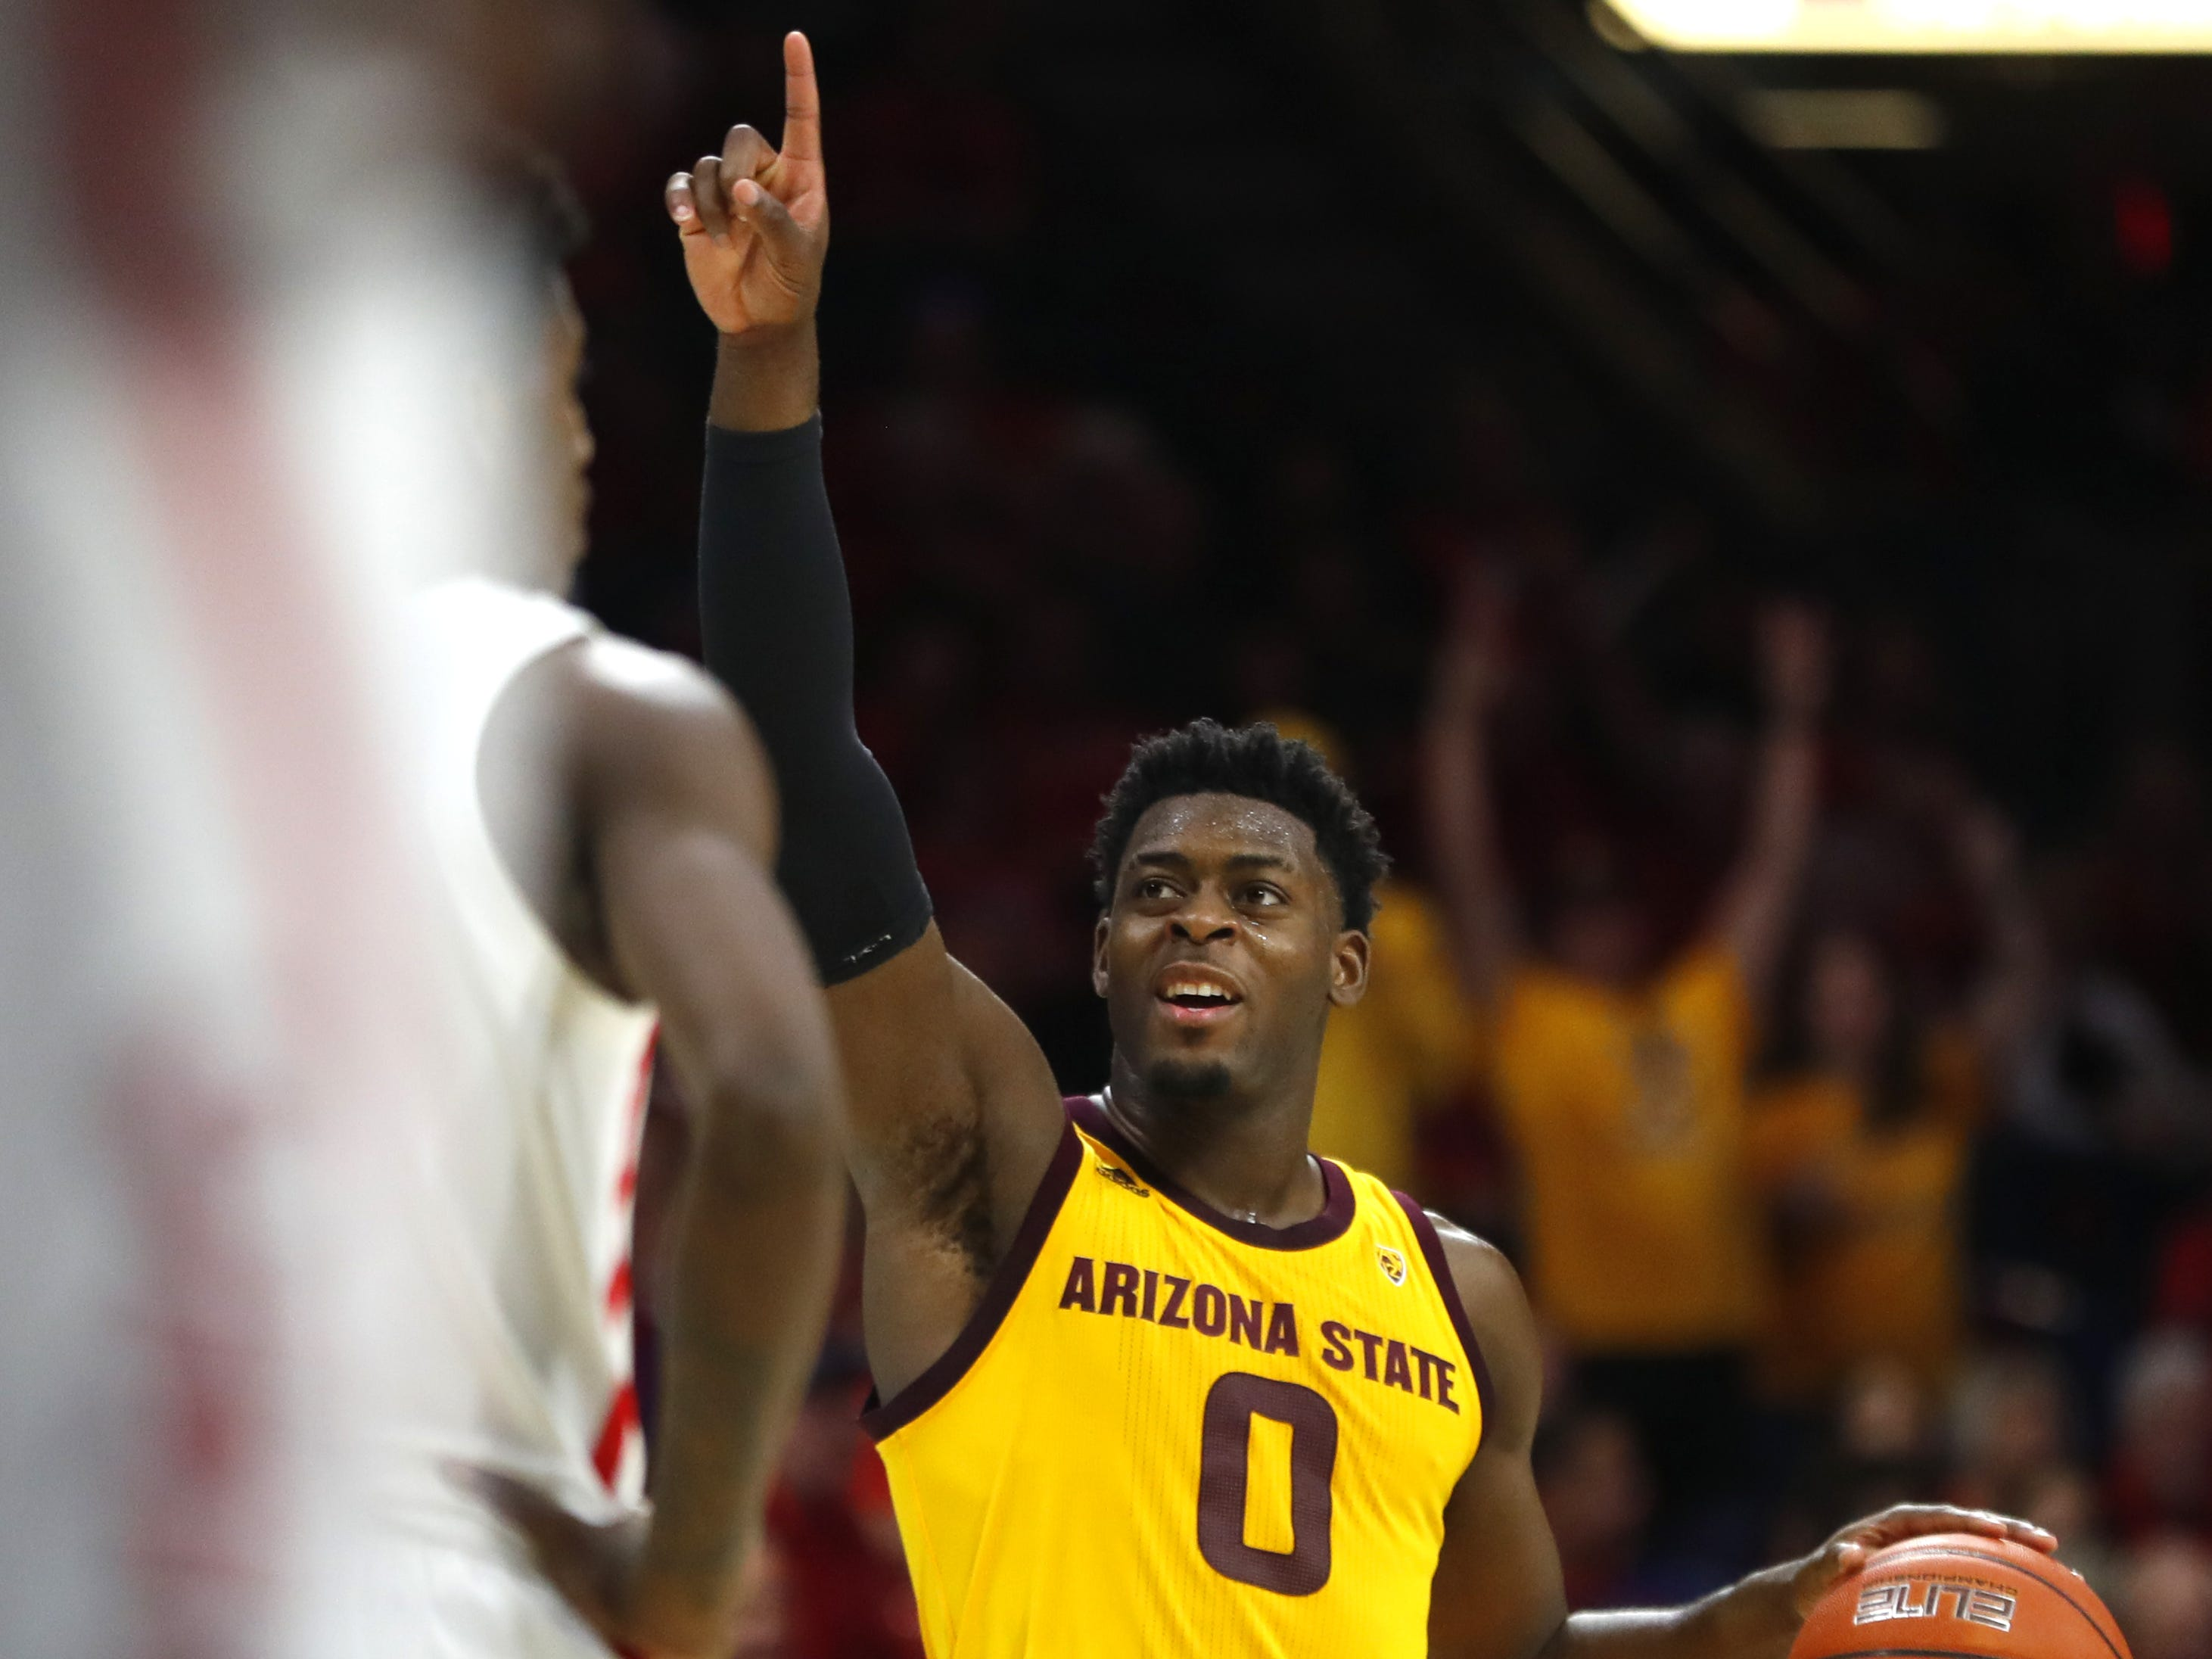 ASU's Luguentz Dort (0) celebrates as he dribbles out the clock as ASU beat Arizona 72-64 at the McKale Memorial Center in Tucson, Ariz. on March 9, 2019.